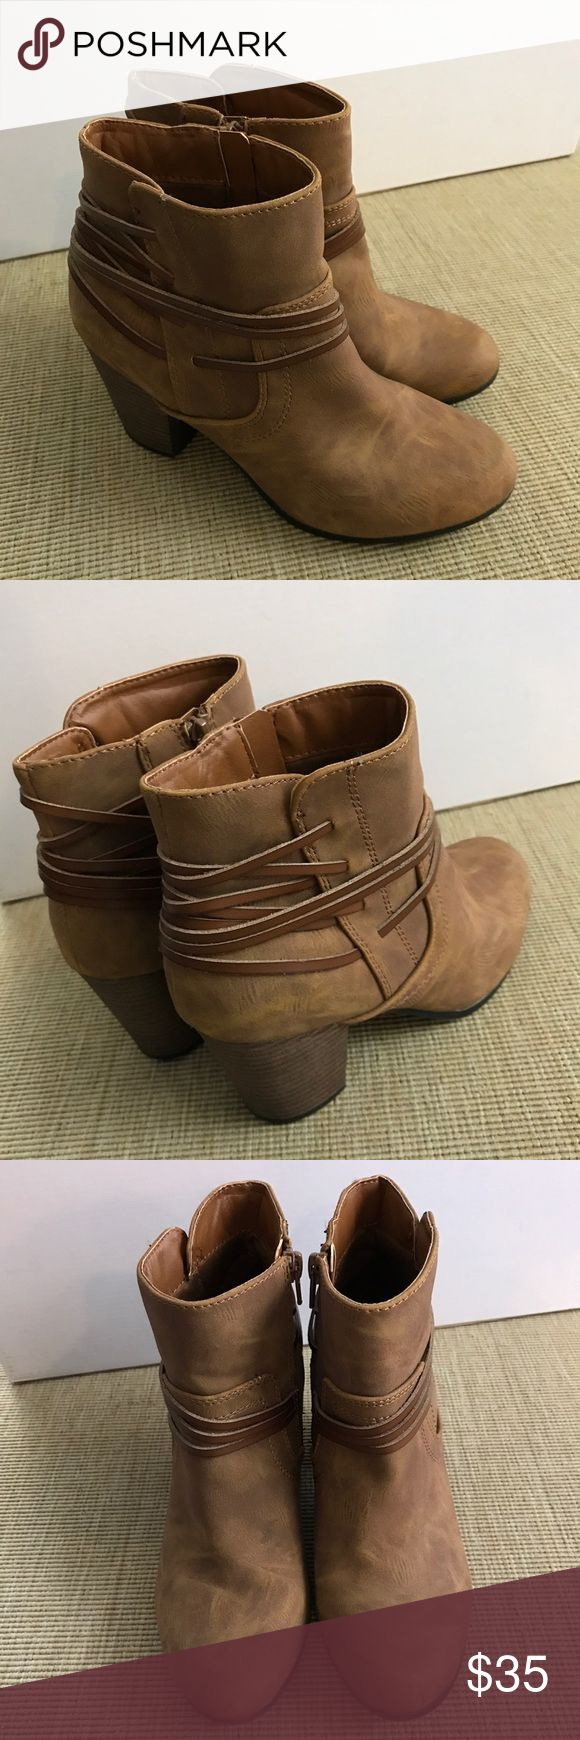 BIG BUDDHA, BOOTS SZ 8 Ankle Brown Ankle Straps BIG BUDDHA, BOOTS SZ 8 Ankle Brown Wrap Strap. Worn once -like new. Big Buddha Shoes Ankle Boots & Booties